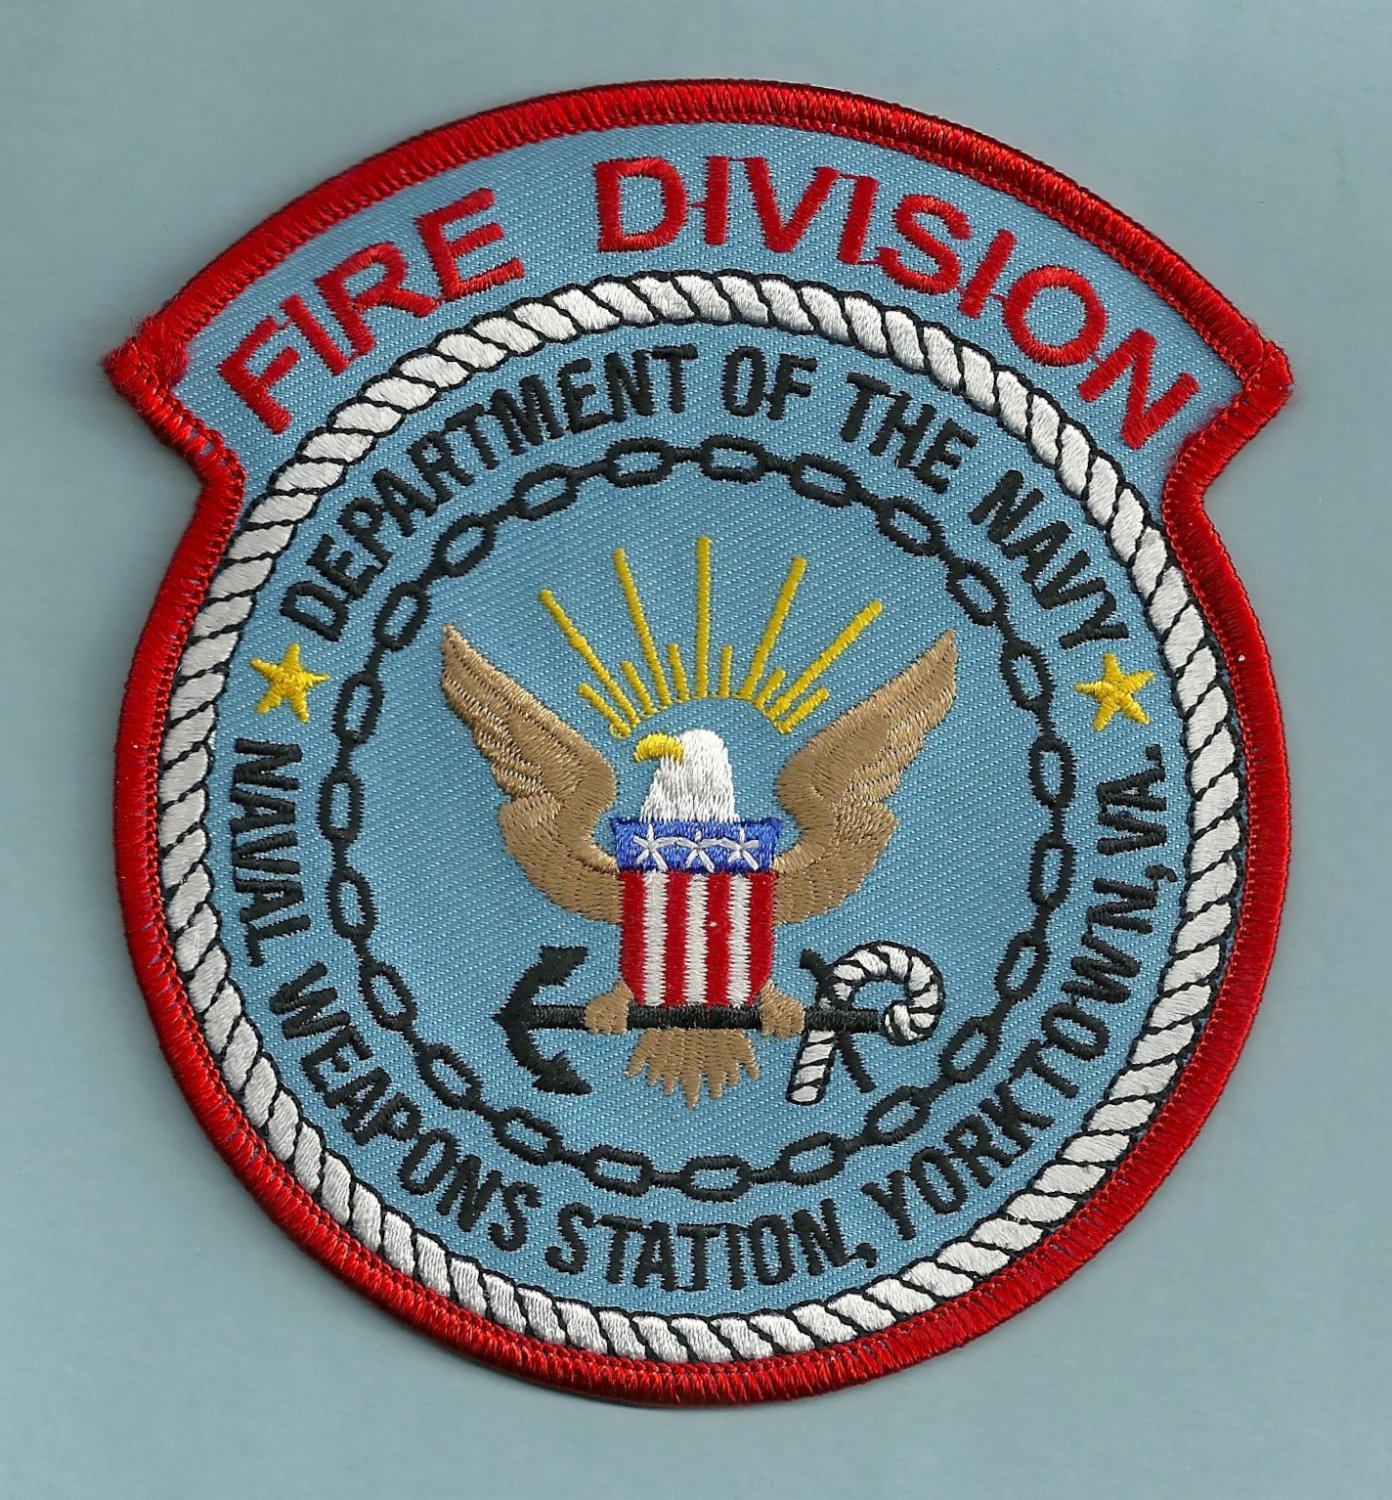 YORKTOWN VIRGINIA NAVAL WEAPONS STATION FIRE RESCUE PATCH